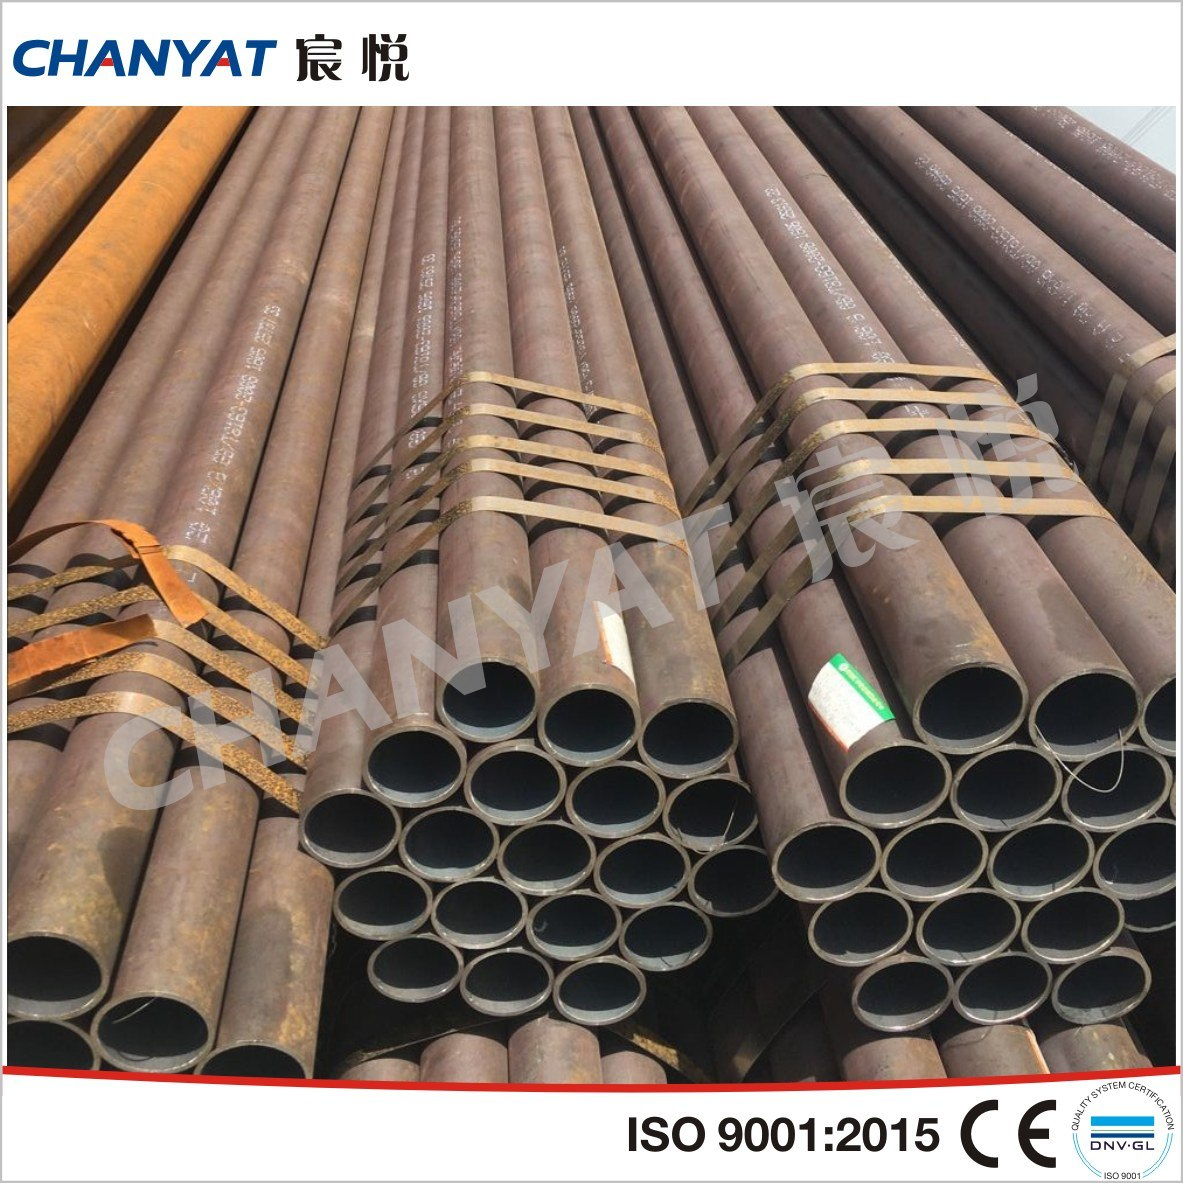 Seamless Carbon and Low Temperature Steel Pipe and Tube